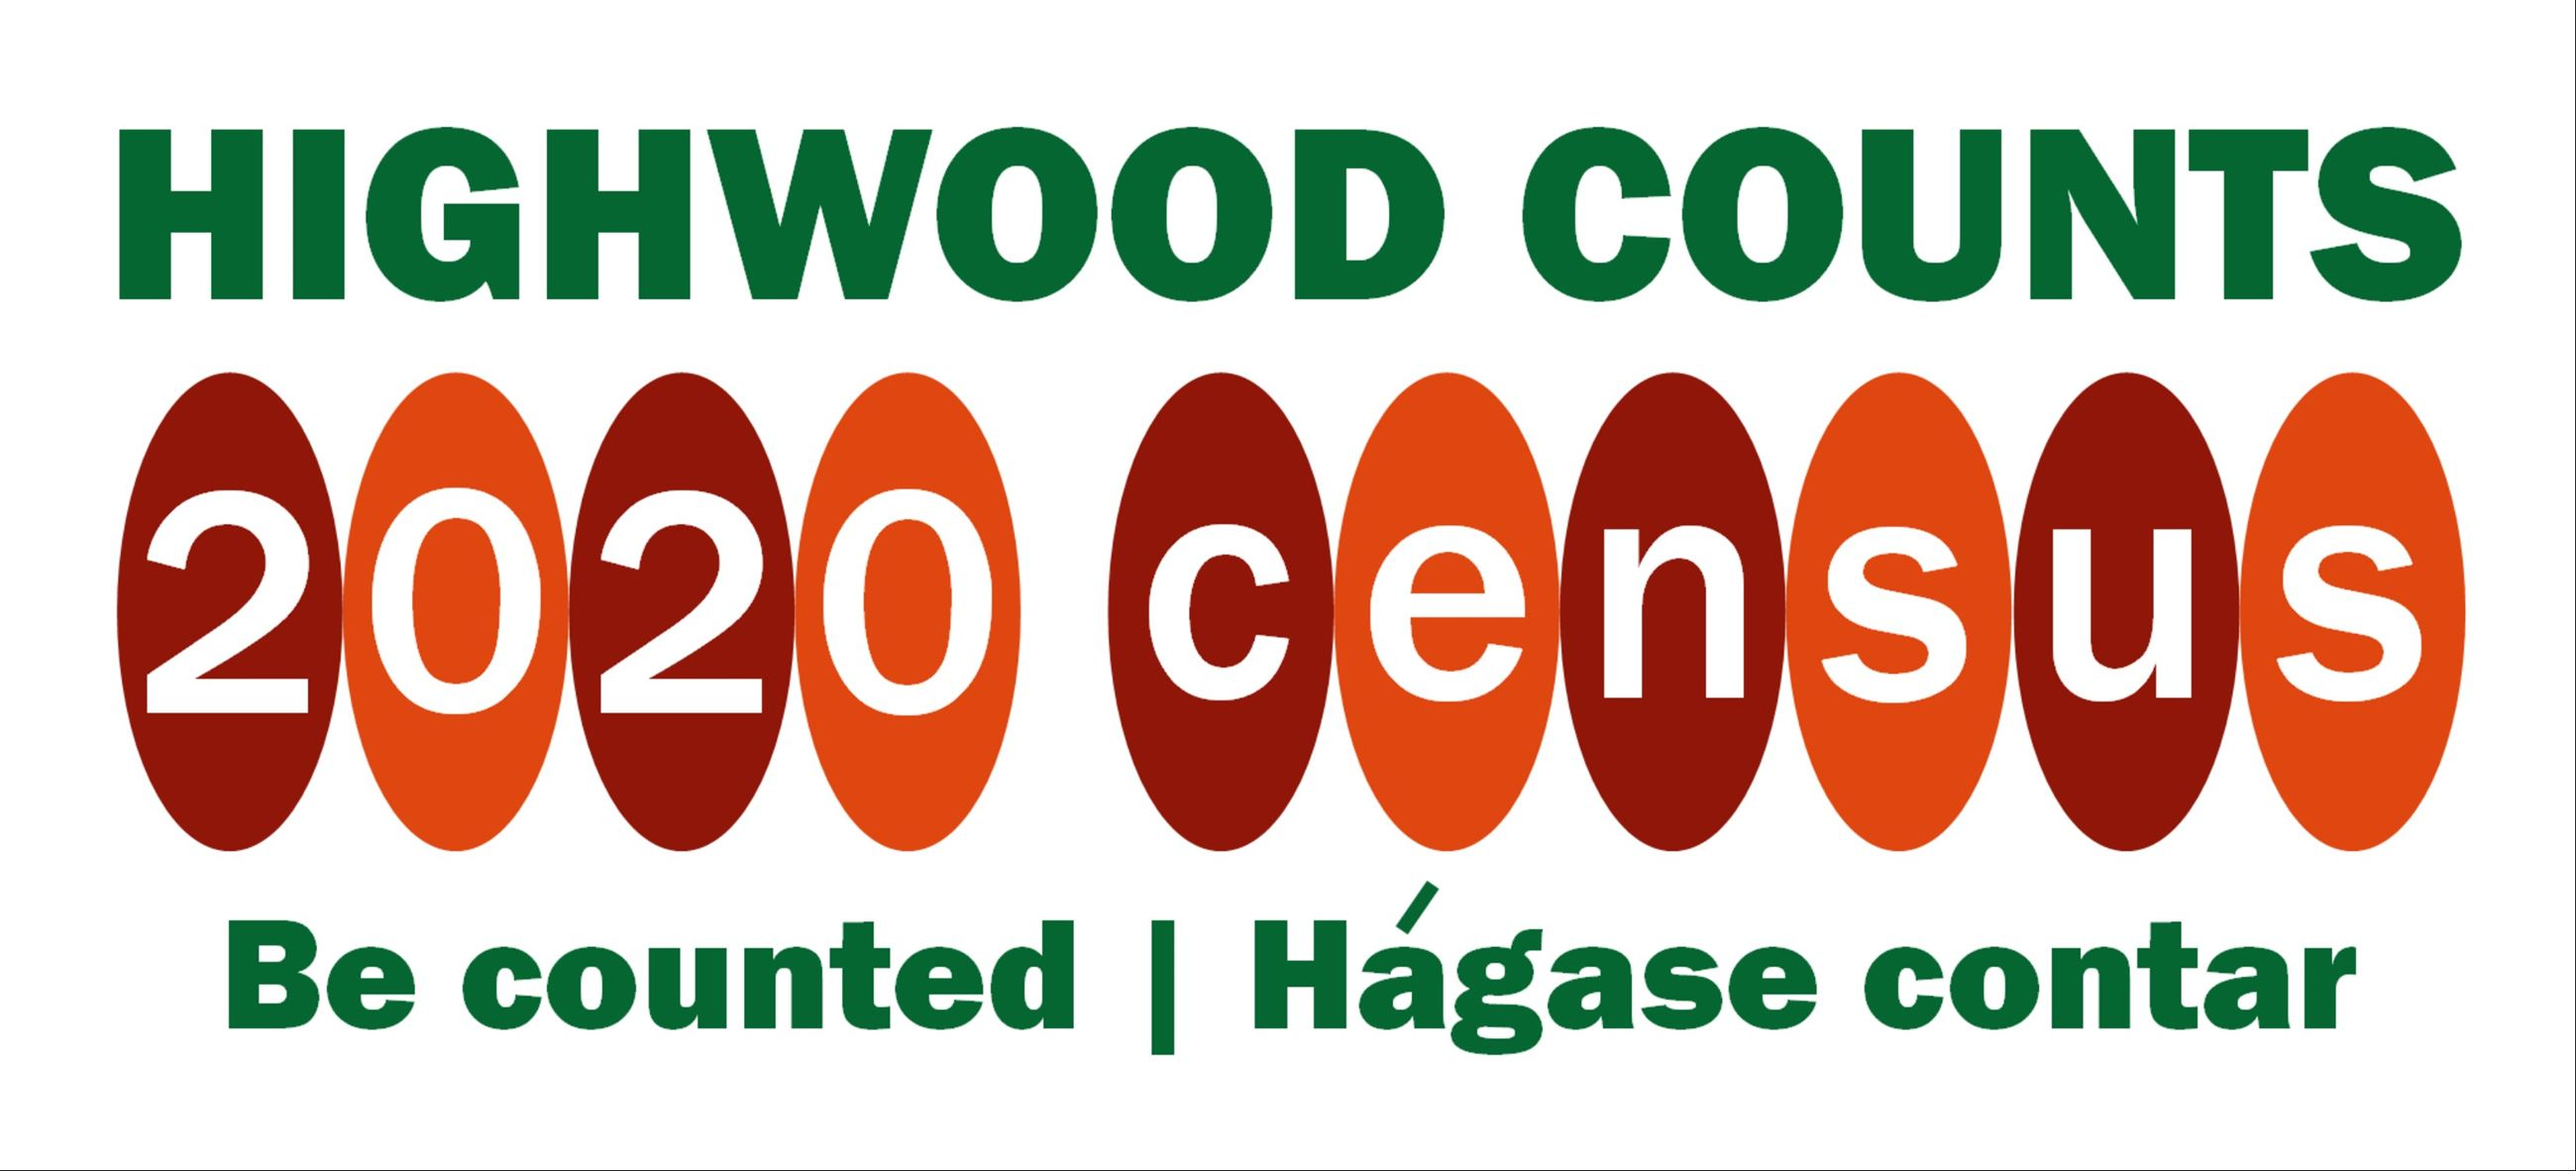 Highwood census 2020 logo